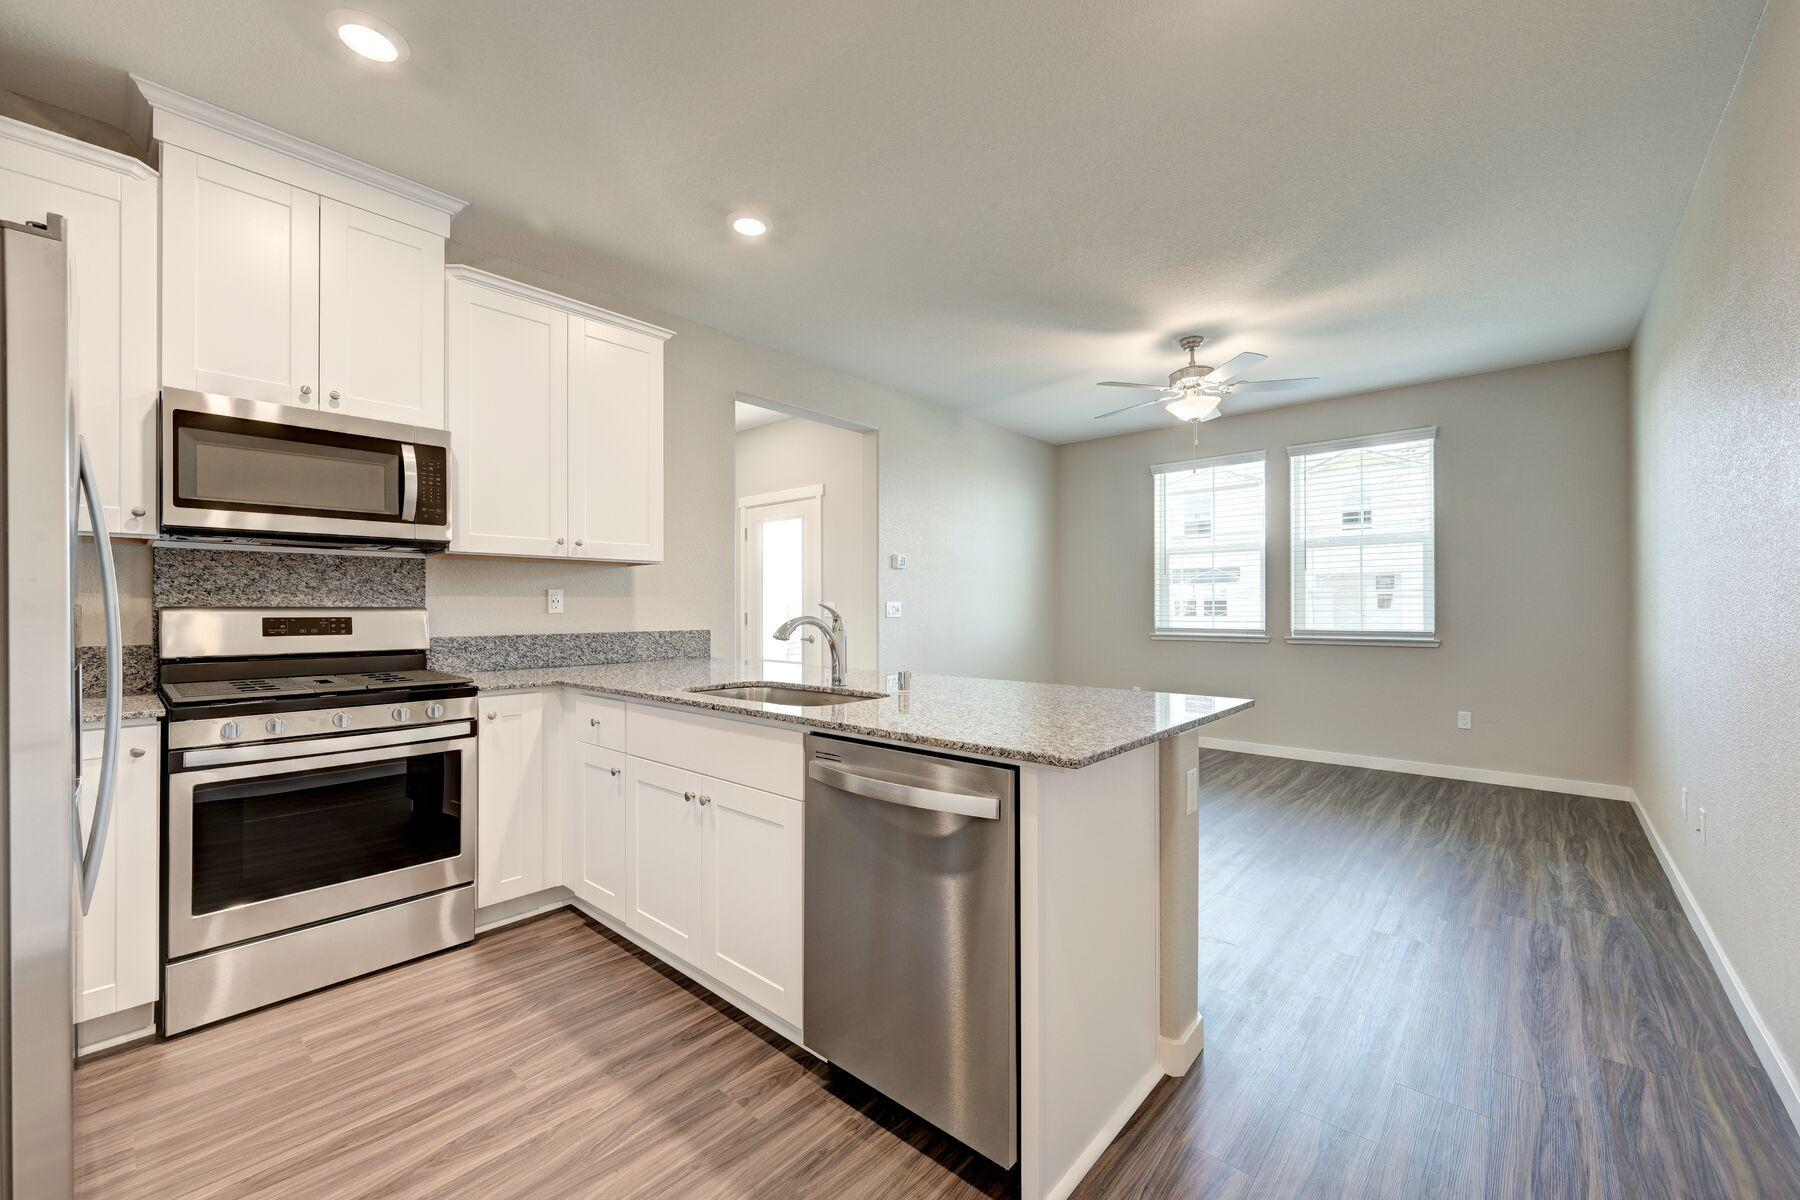 Kitchen featured in the Empire By LGI Homes in Sacramento, CA